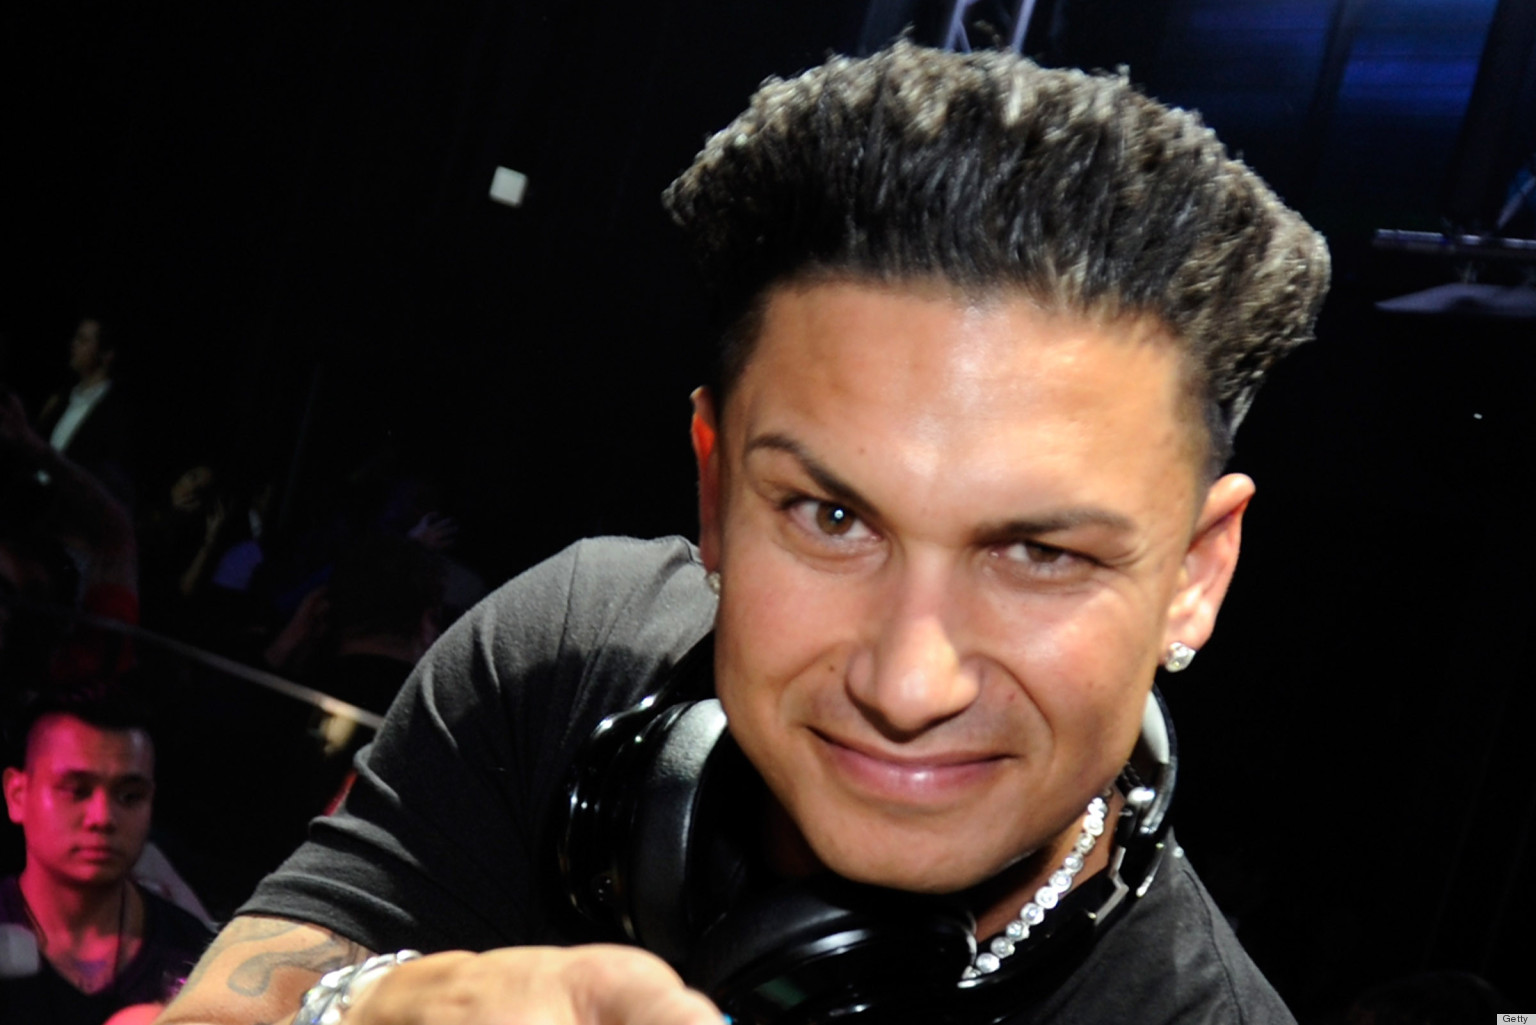 Pauly D New Hair Totally Transforms Jersey Shore Star